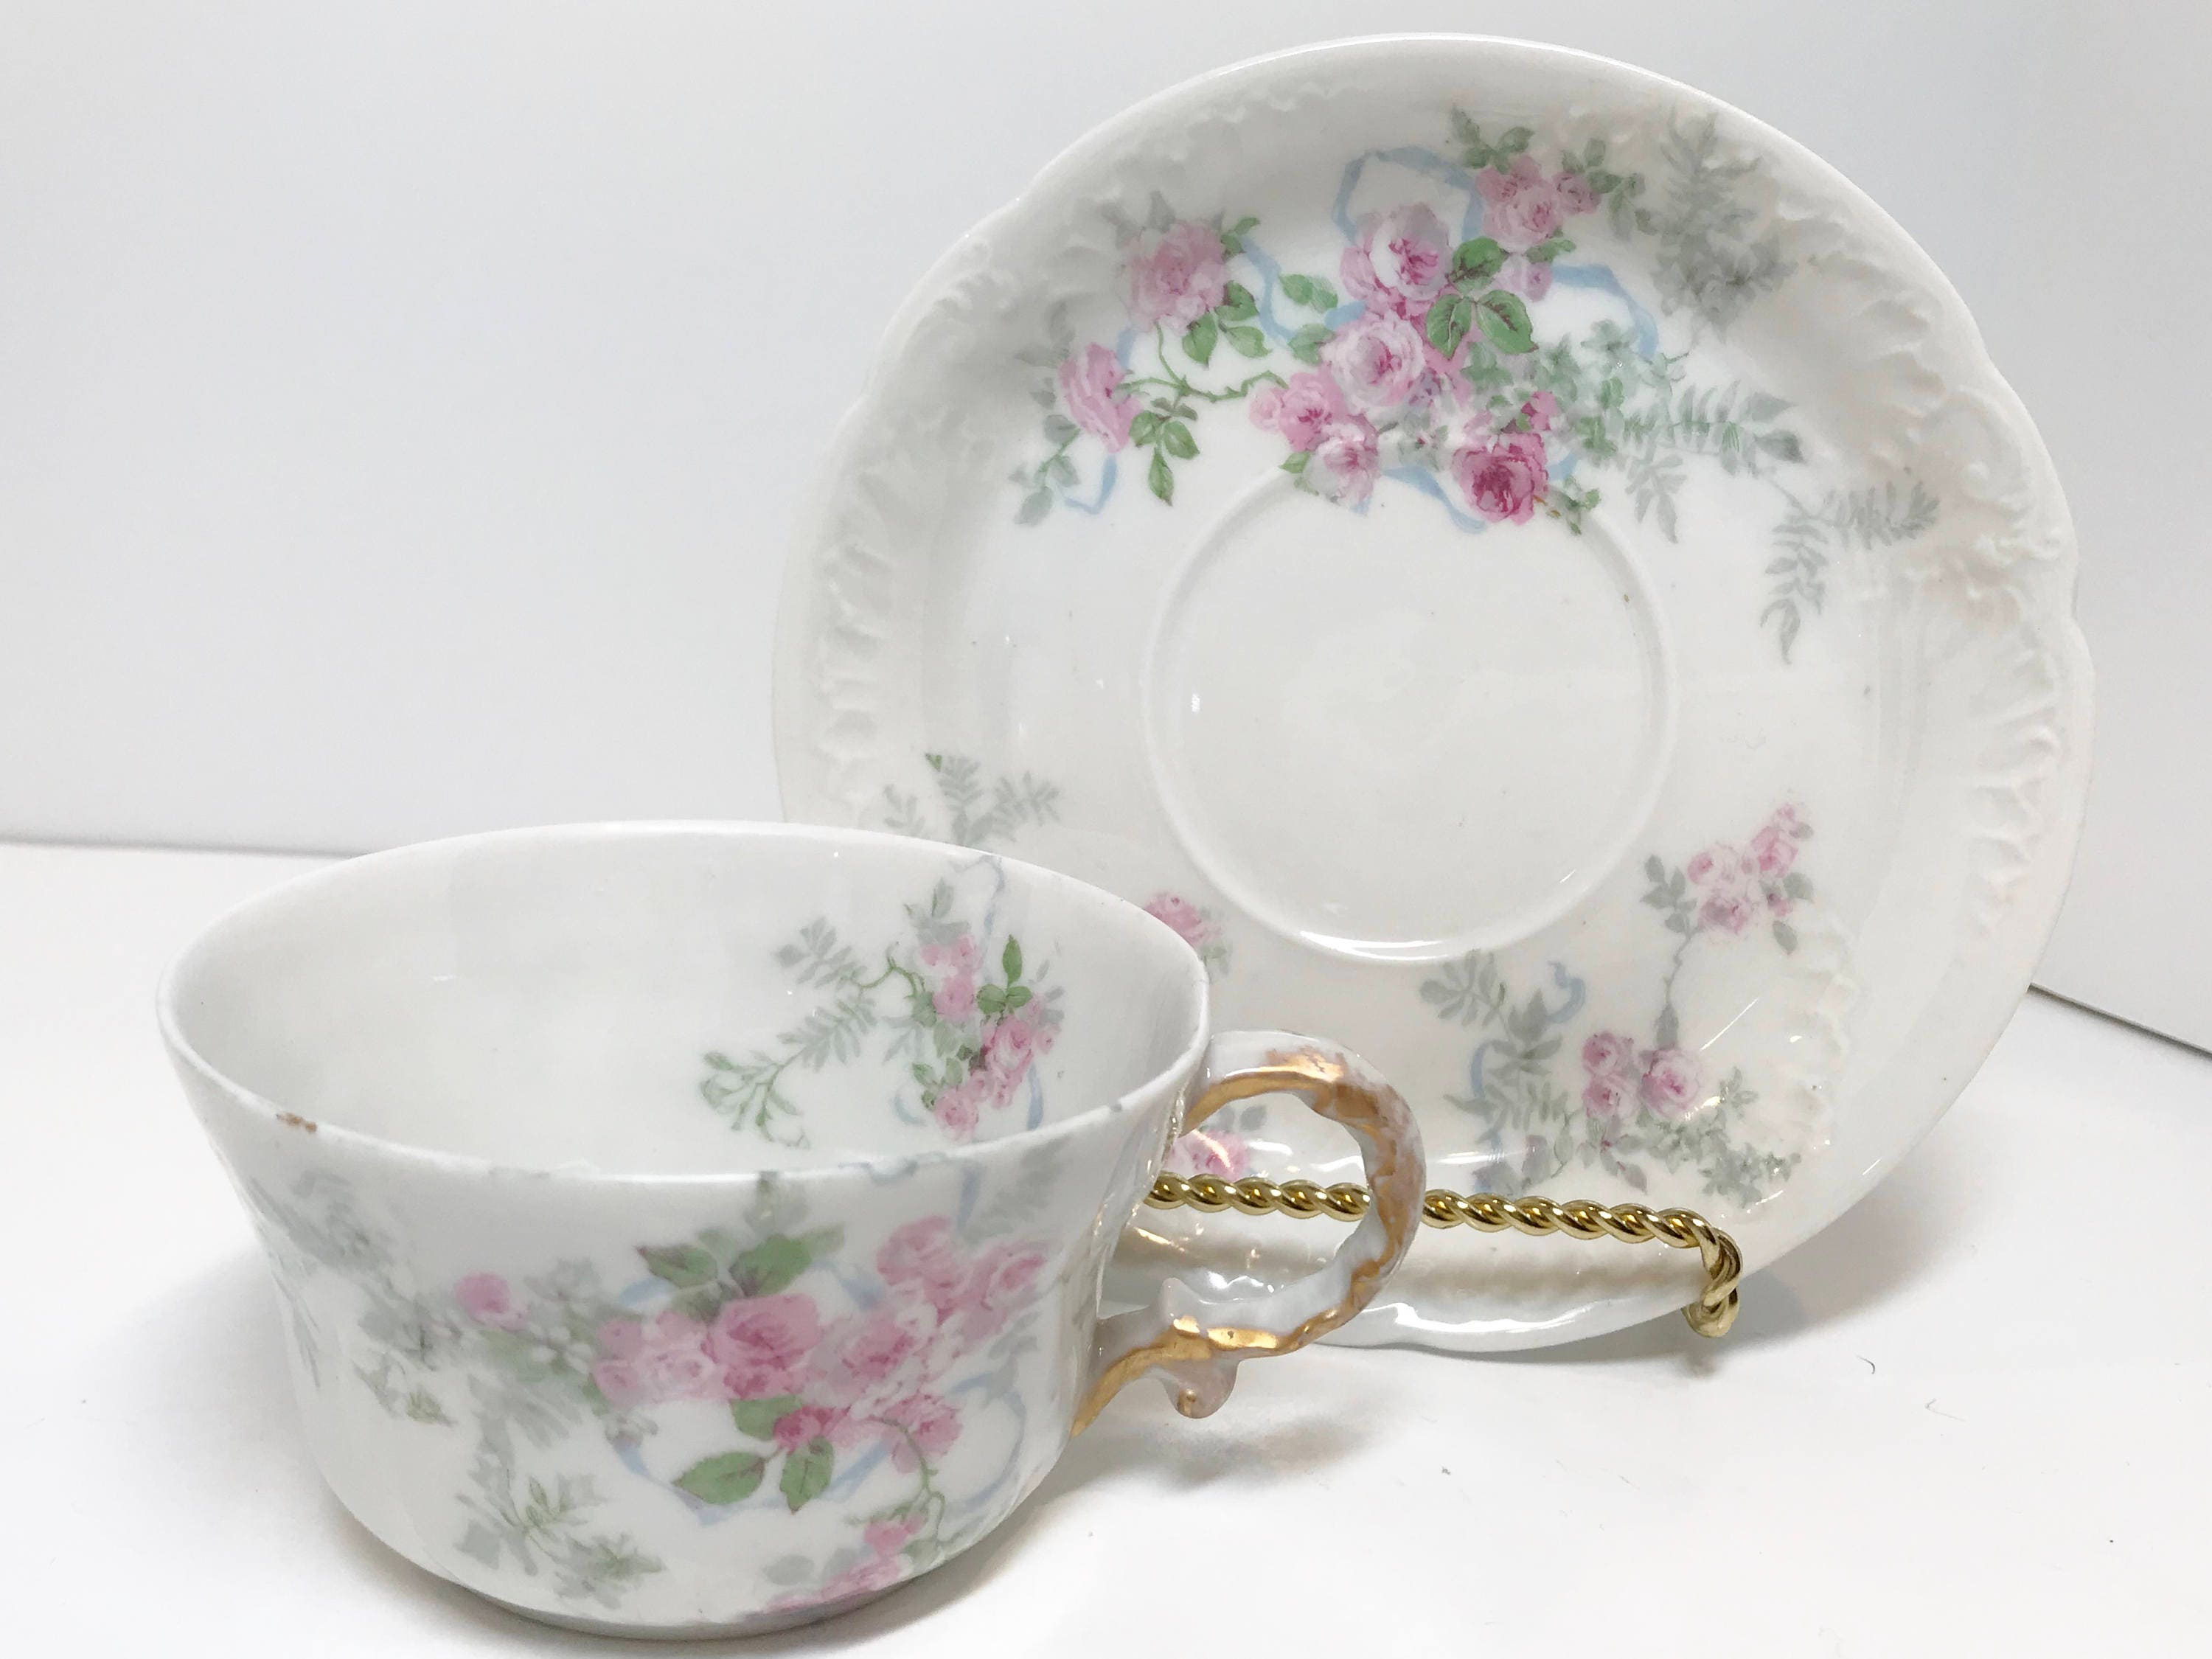 Guerin Limoges Teacup And Saucer Wm Guerin Limoges French Limoges